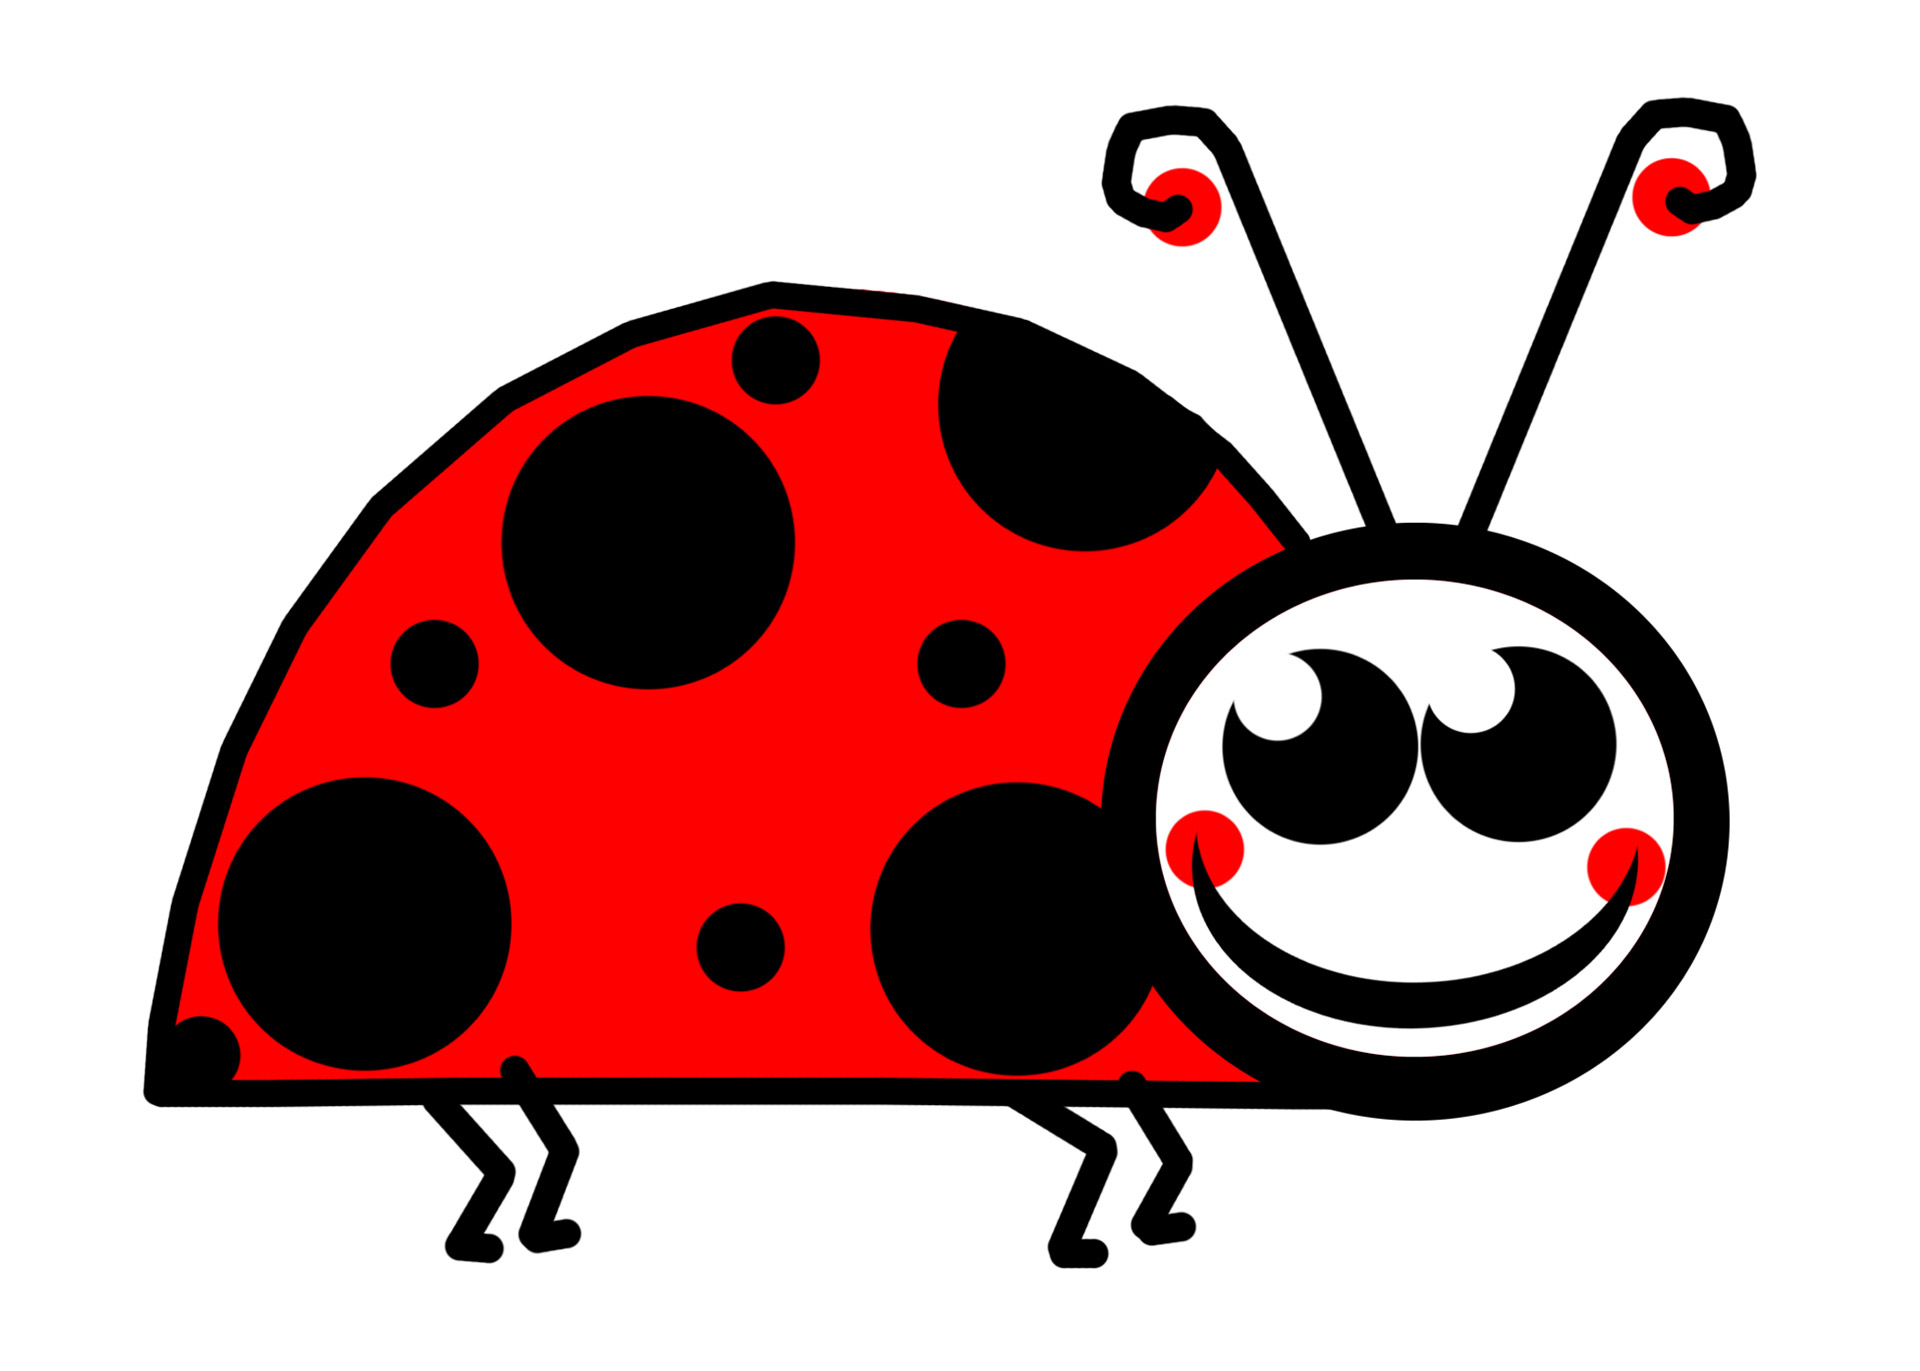 Insect lady bug clip art free stock photo public domain pictures